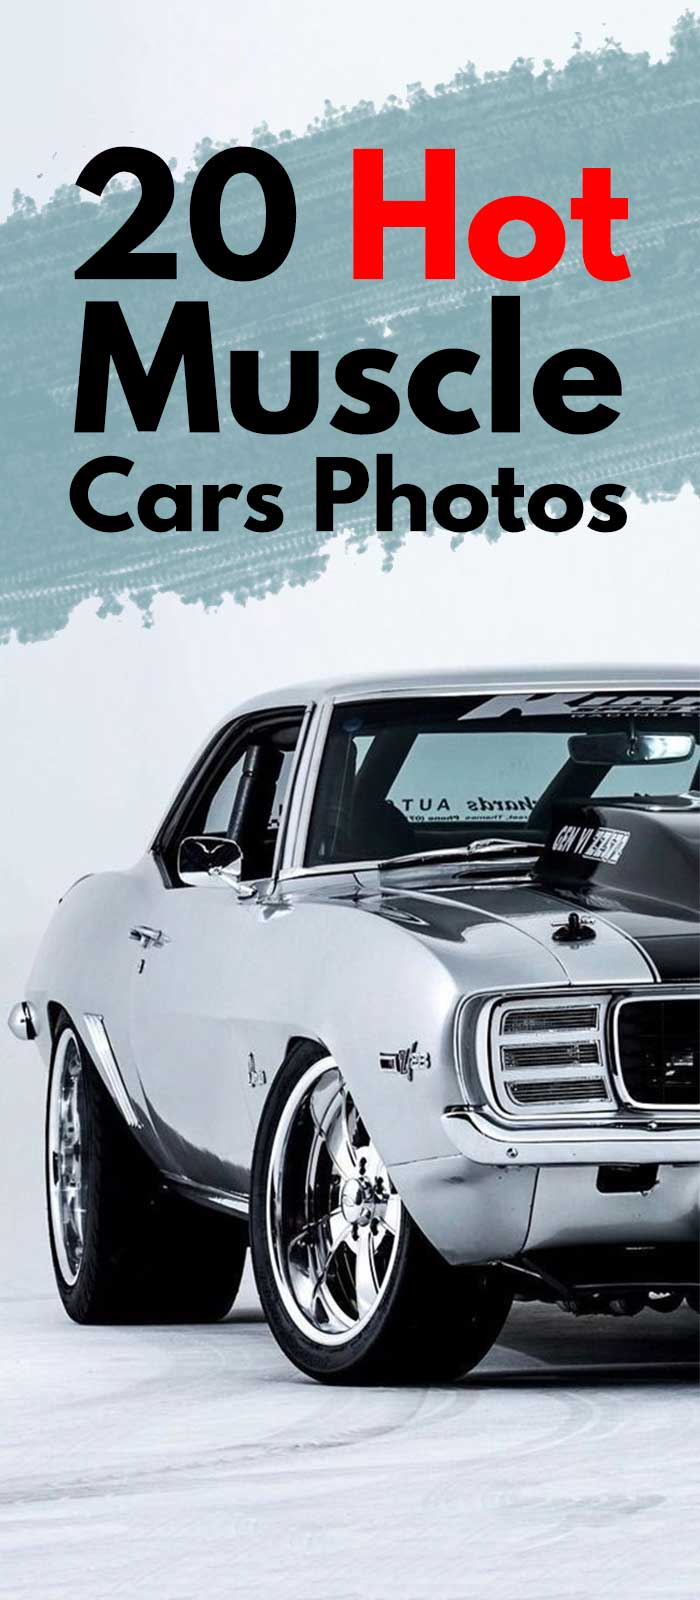 Hot Muscle Cars Photos.